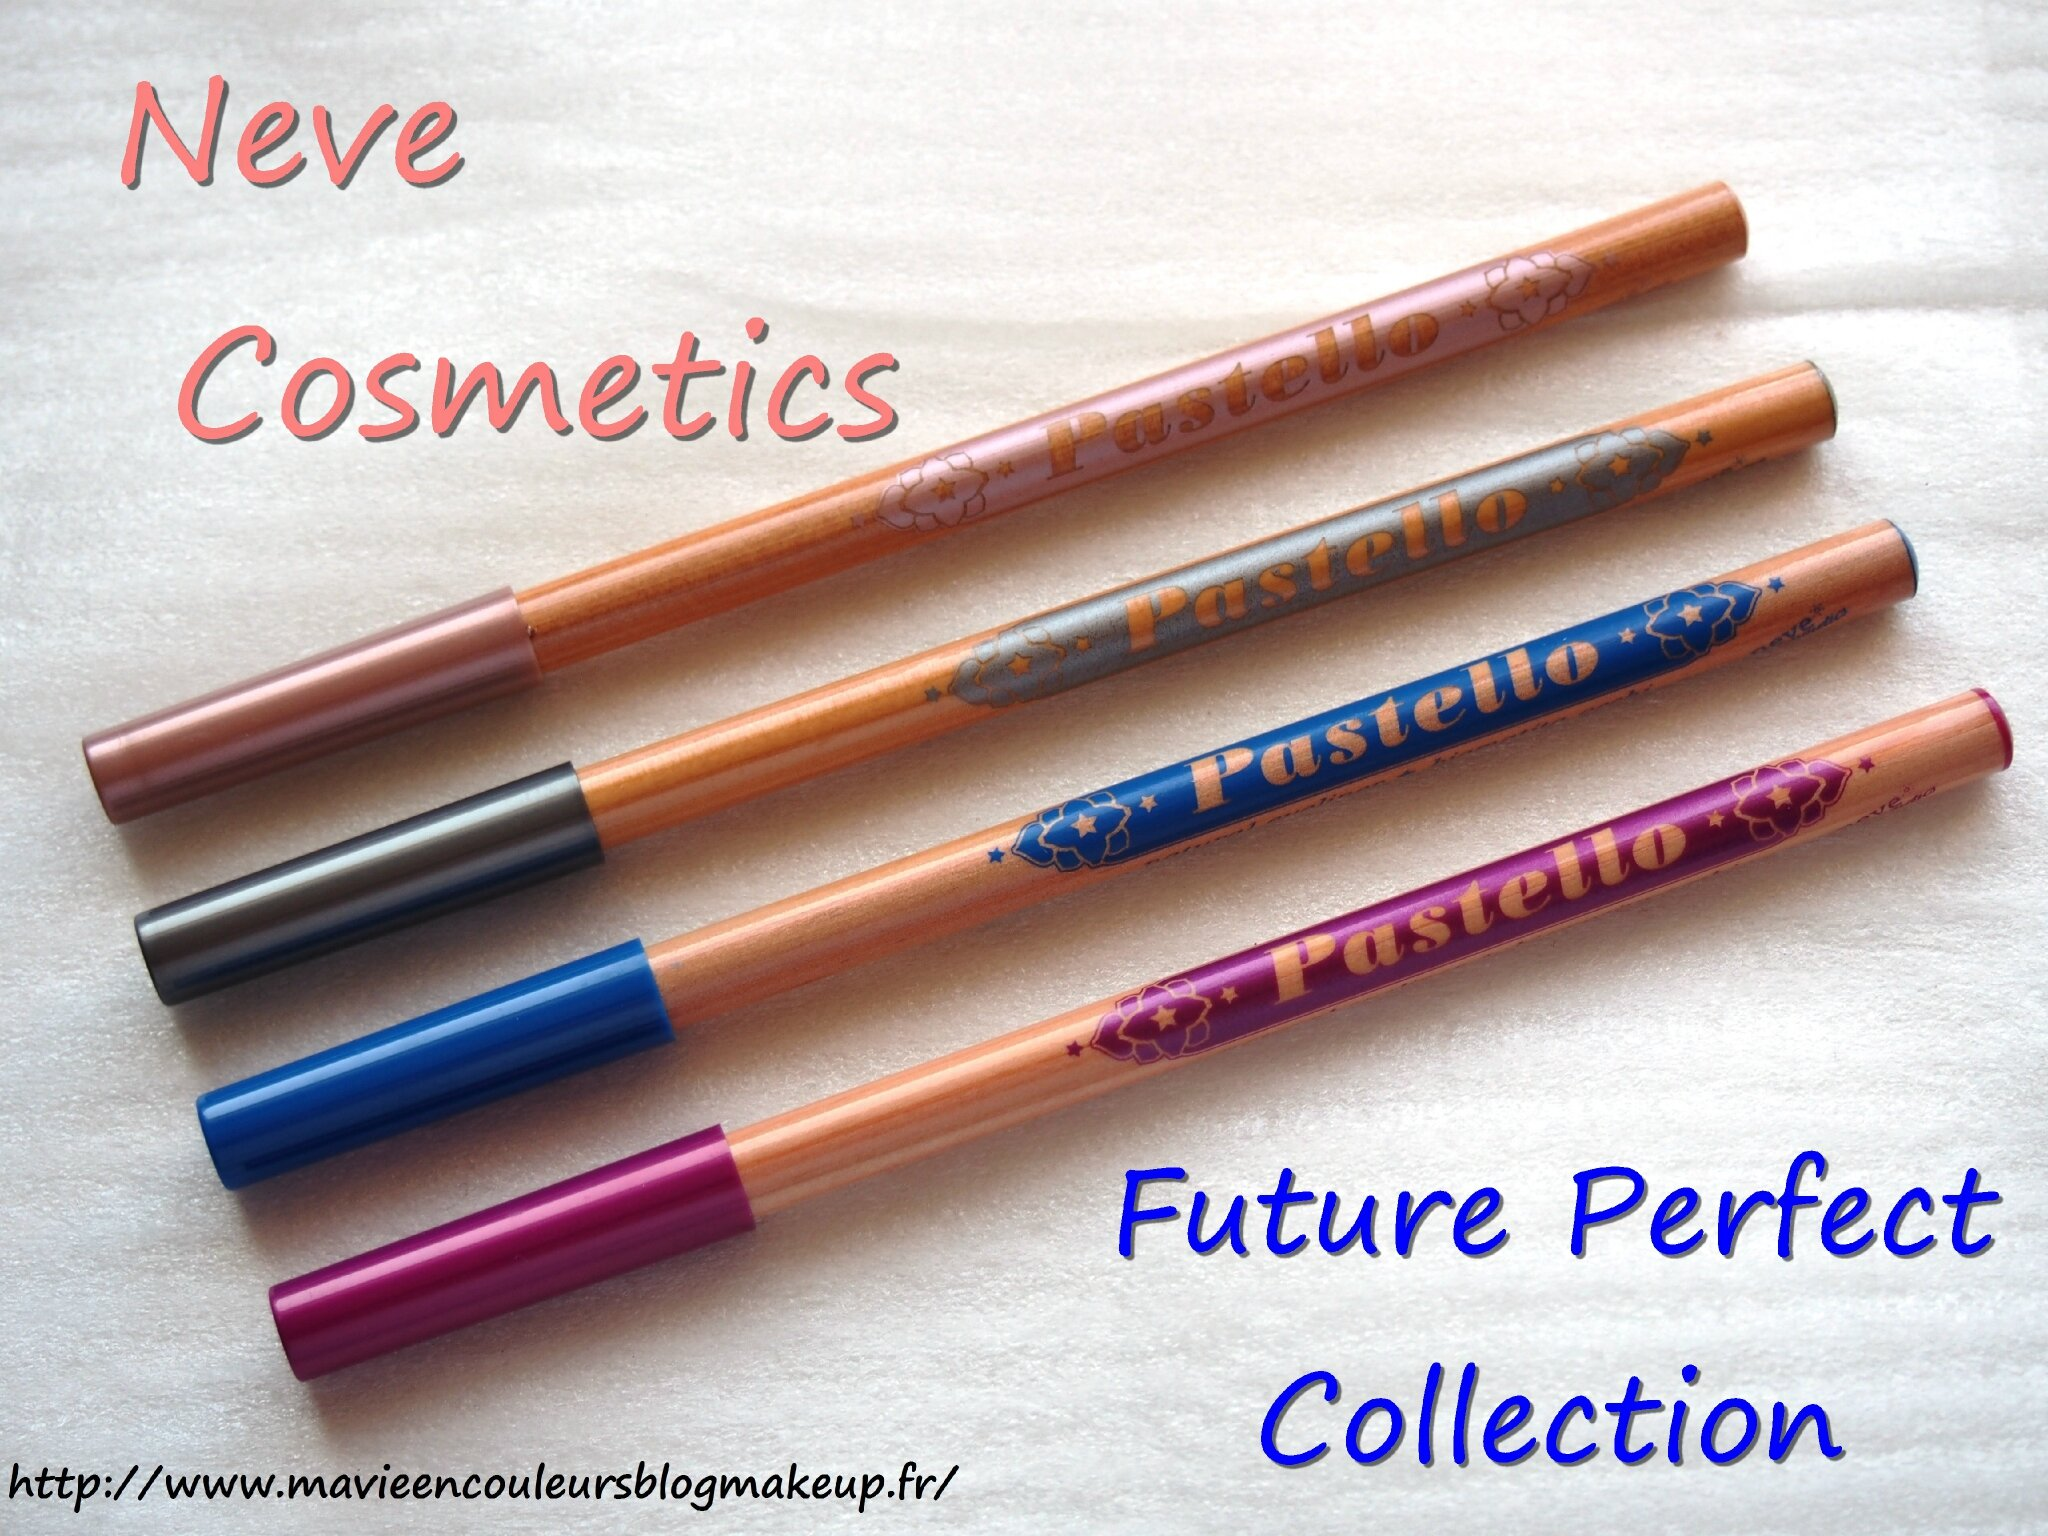 Future perfect,la nouvelle collection de pastello par neve cosmetics.